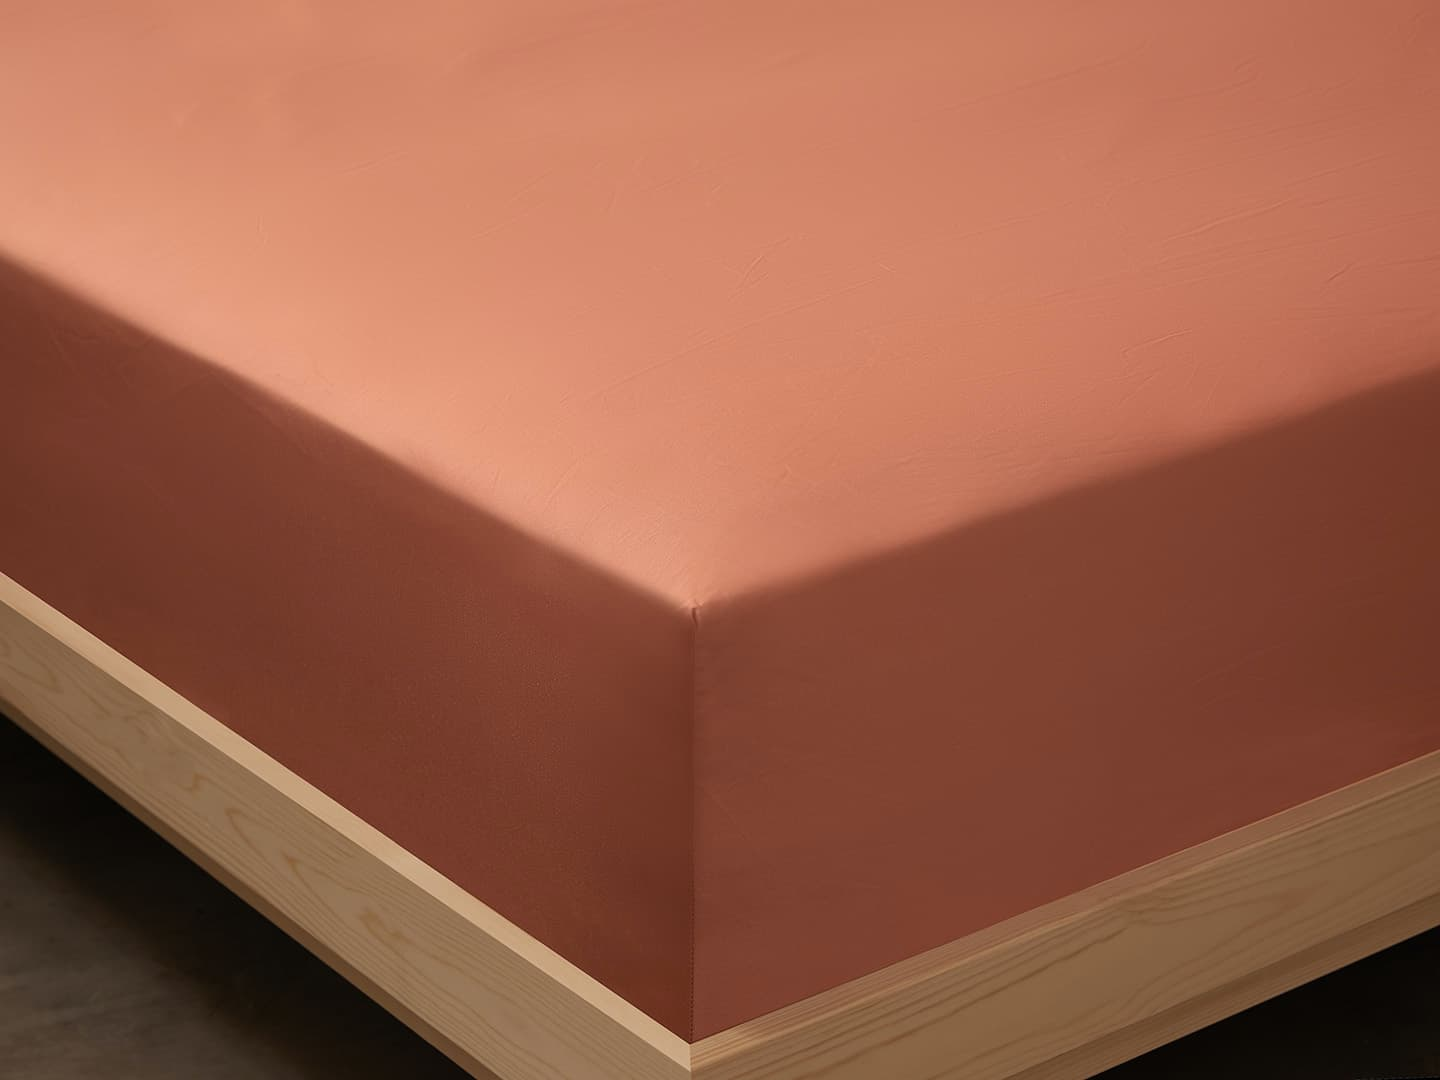 Fitted Sheet Lind - Pink Terracotta in the group Bedding / Flat Sheets at A L V A (1135)